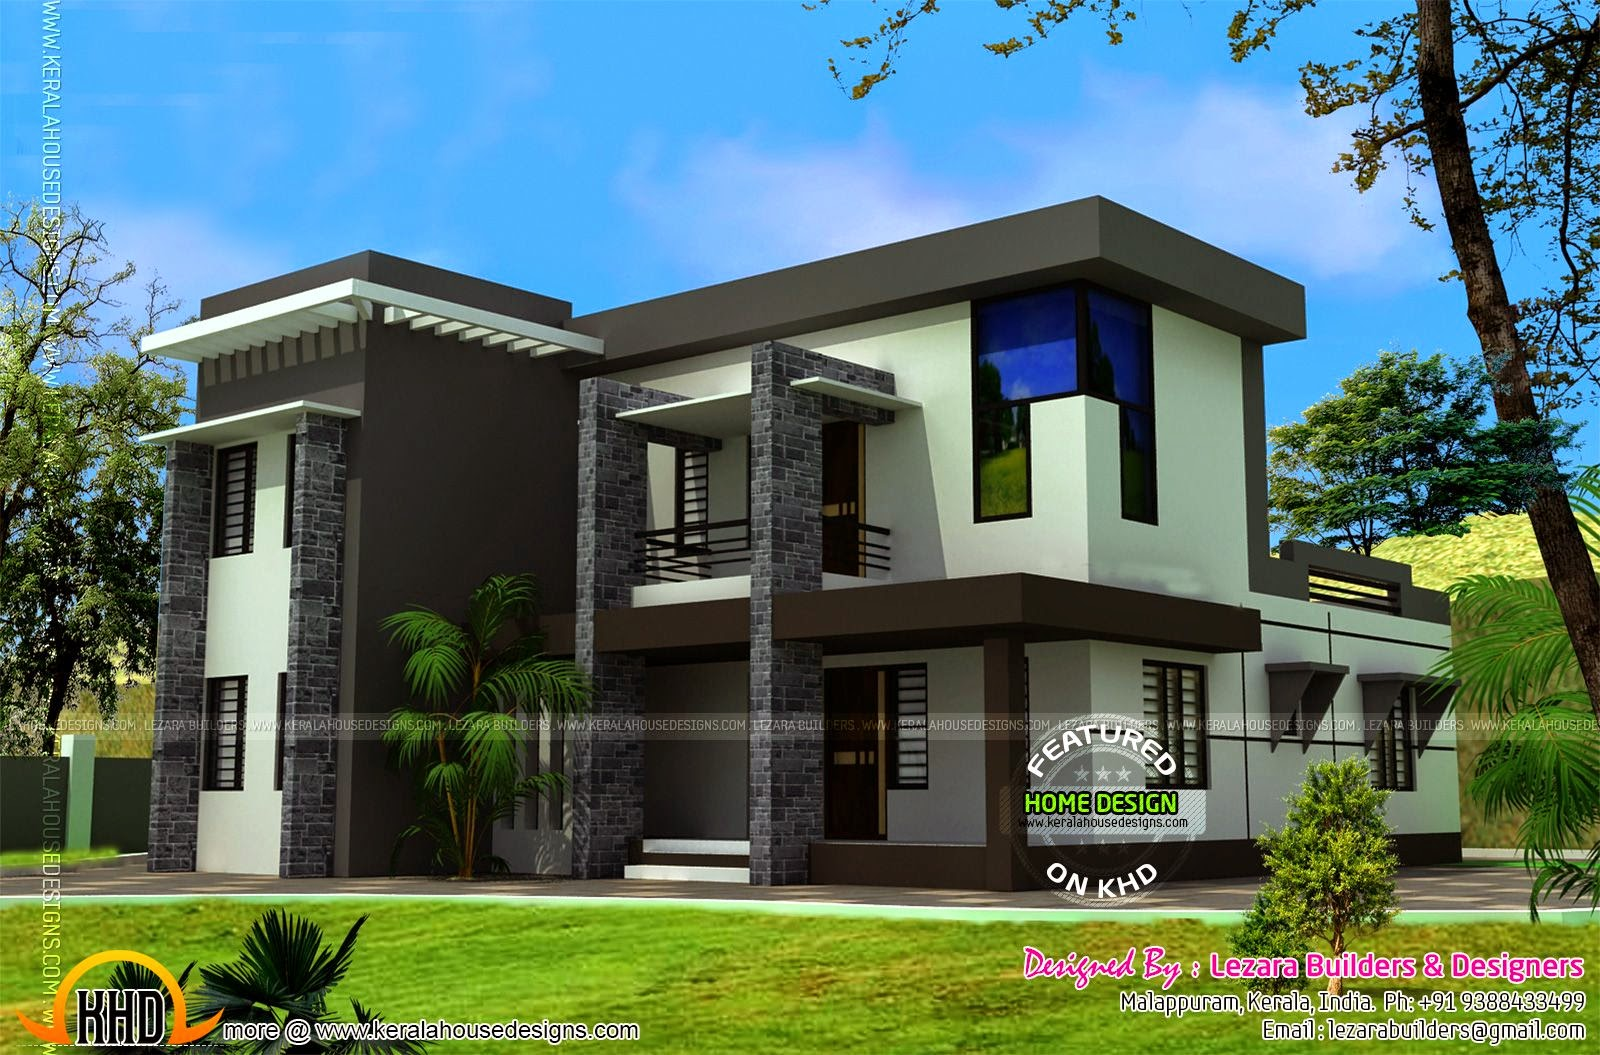 Siddu buzz online modern flat roof house 2550 square feet Modern flat roof house designs